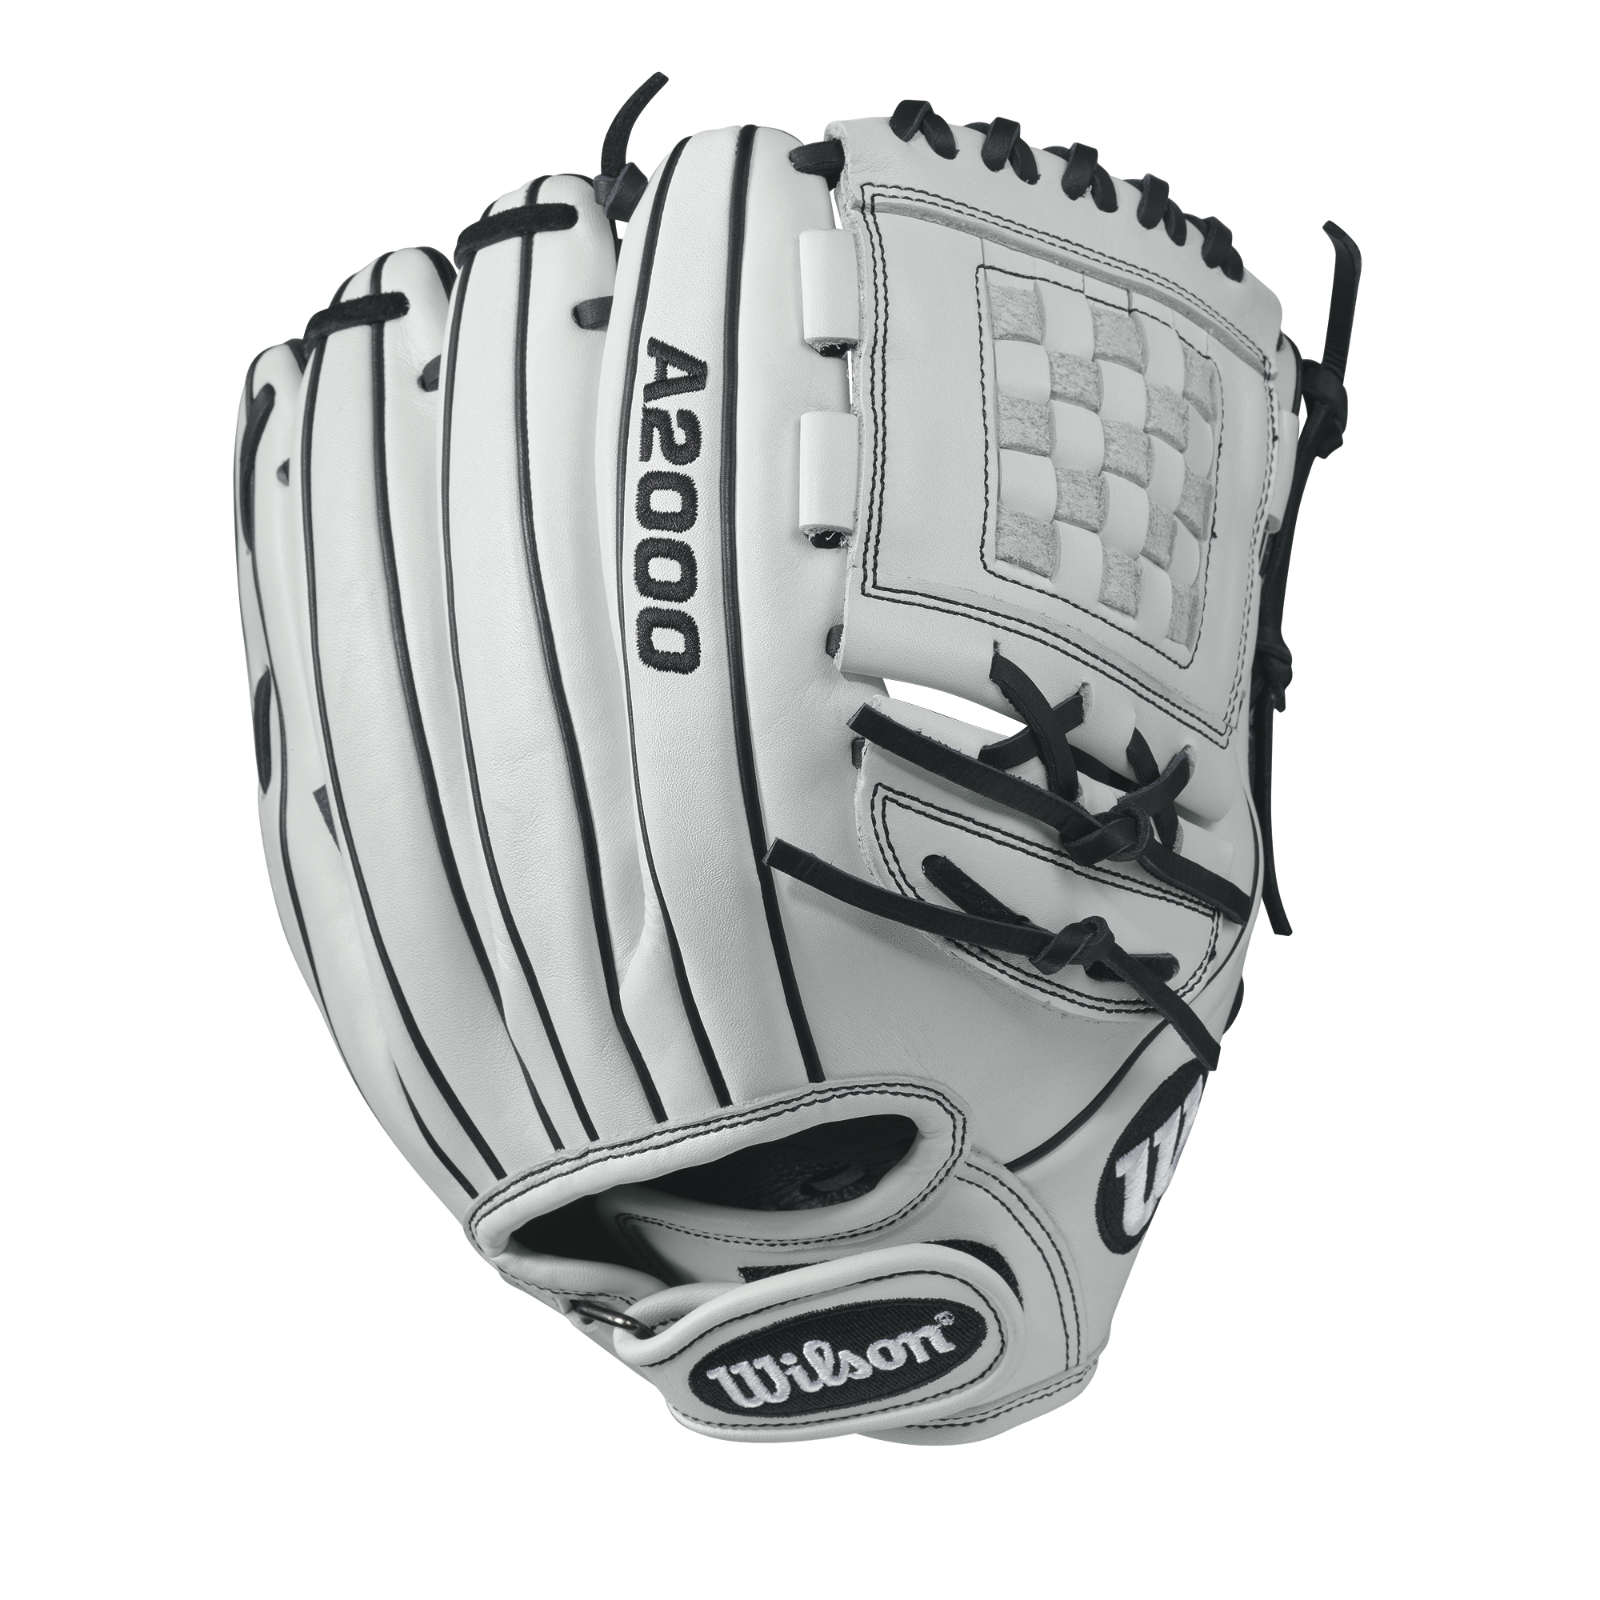 Brand New Wilson A2000 P12 12 Fastpitch Softball Glove Wta20rf17p12 Ebay Link Fastpitch Softball Gloves Softball Gloves Wilson Softball Gloves